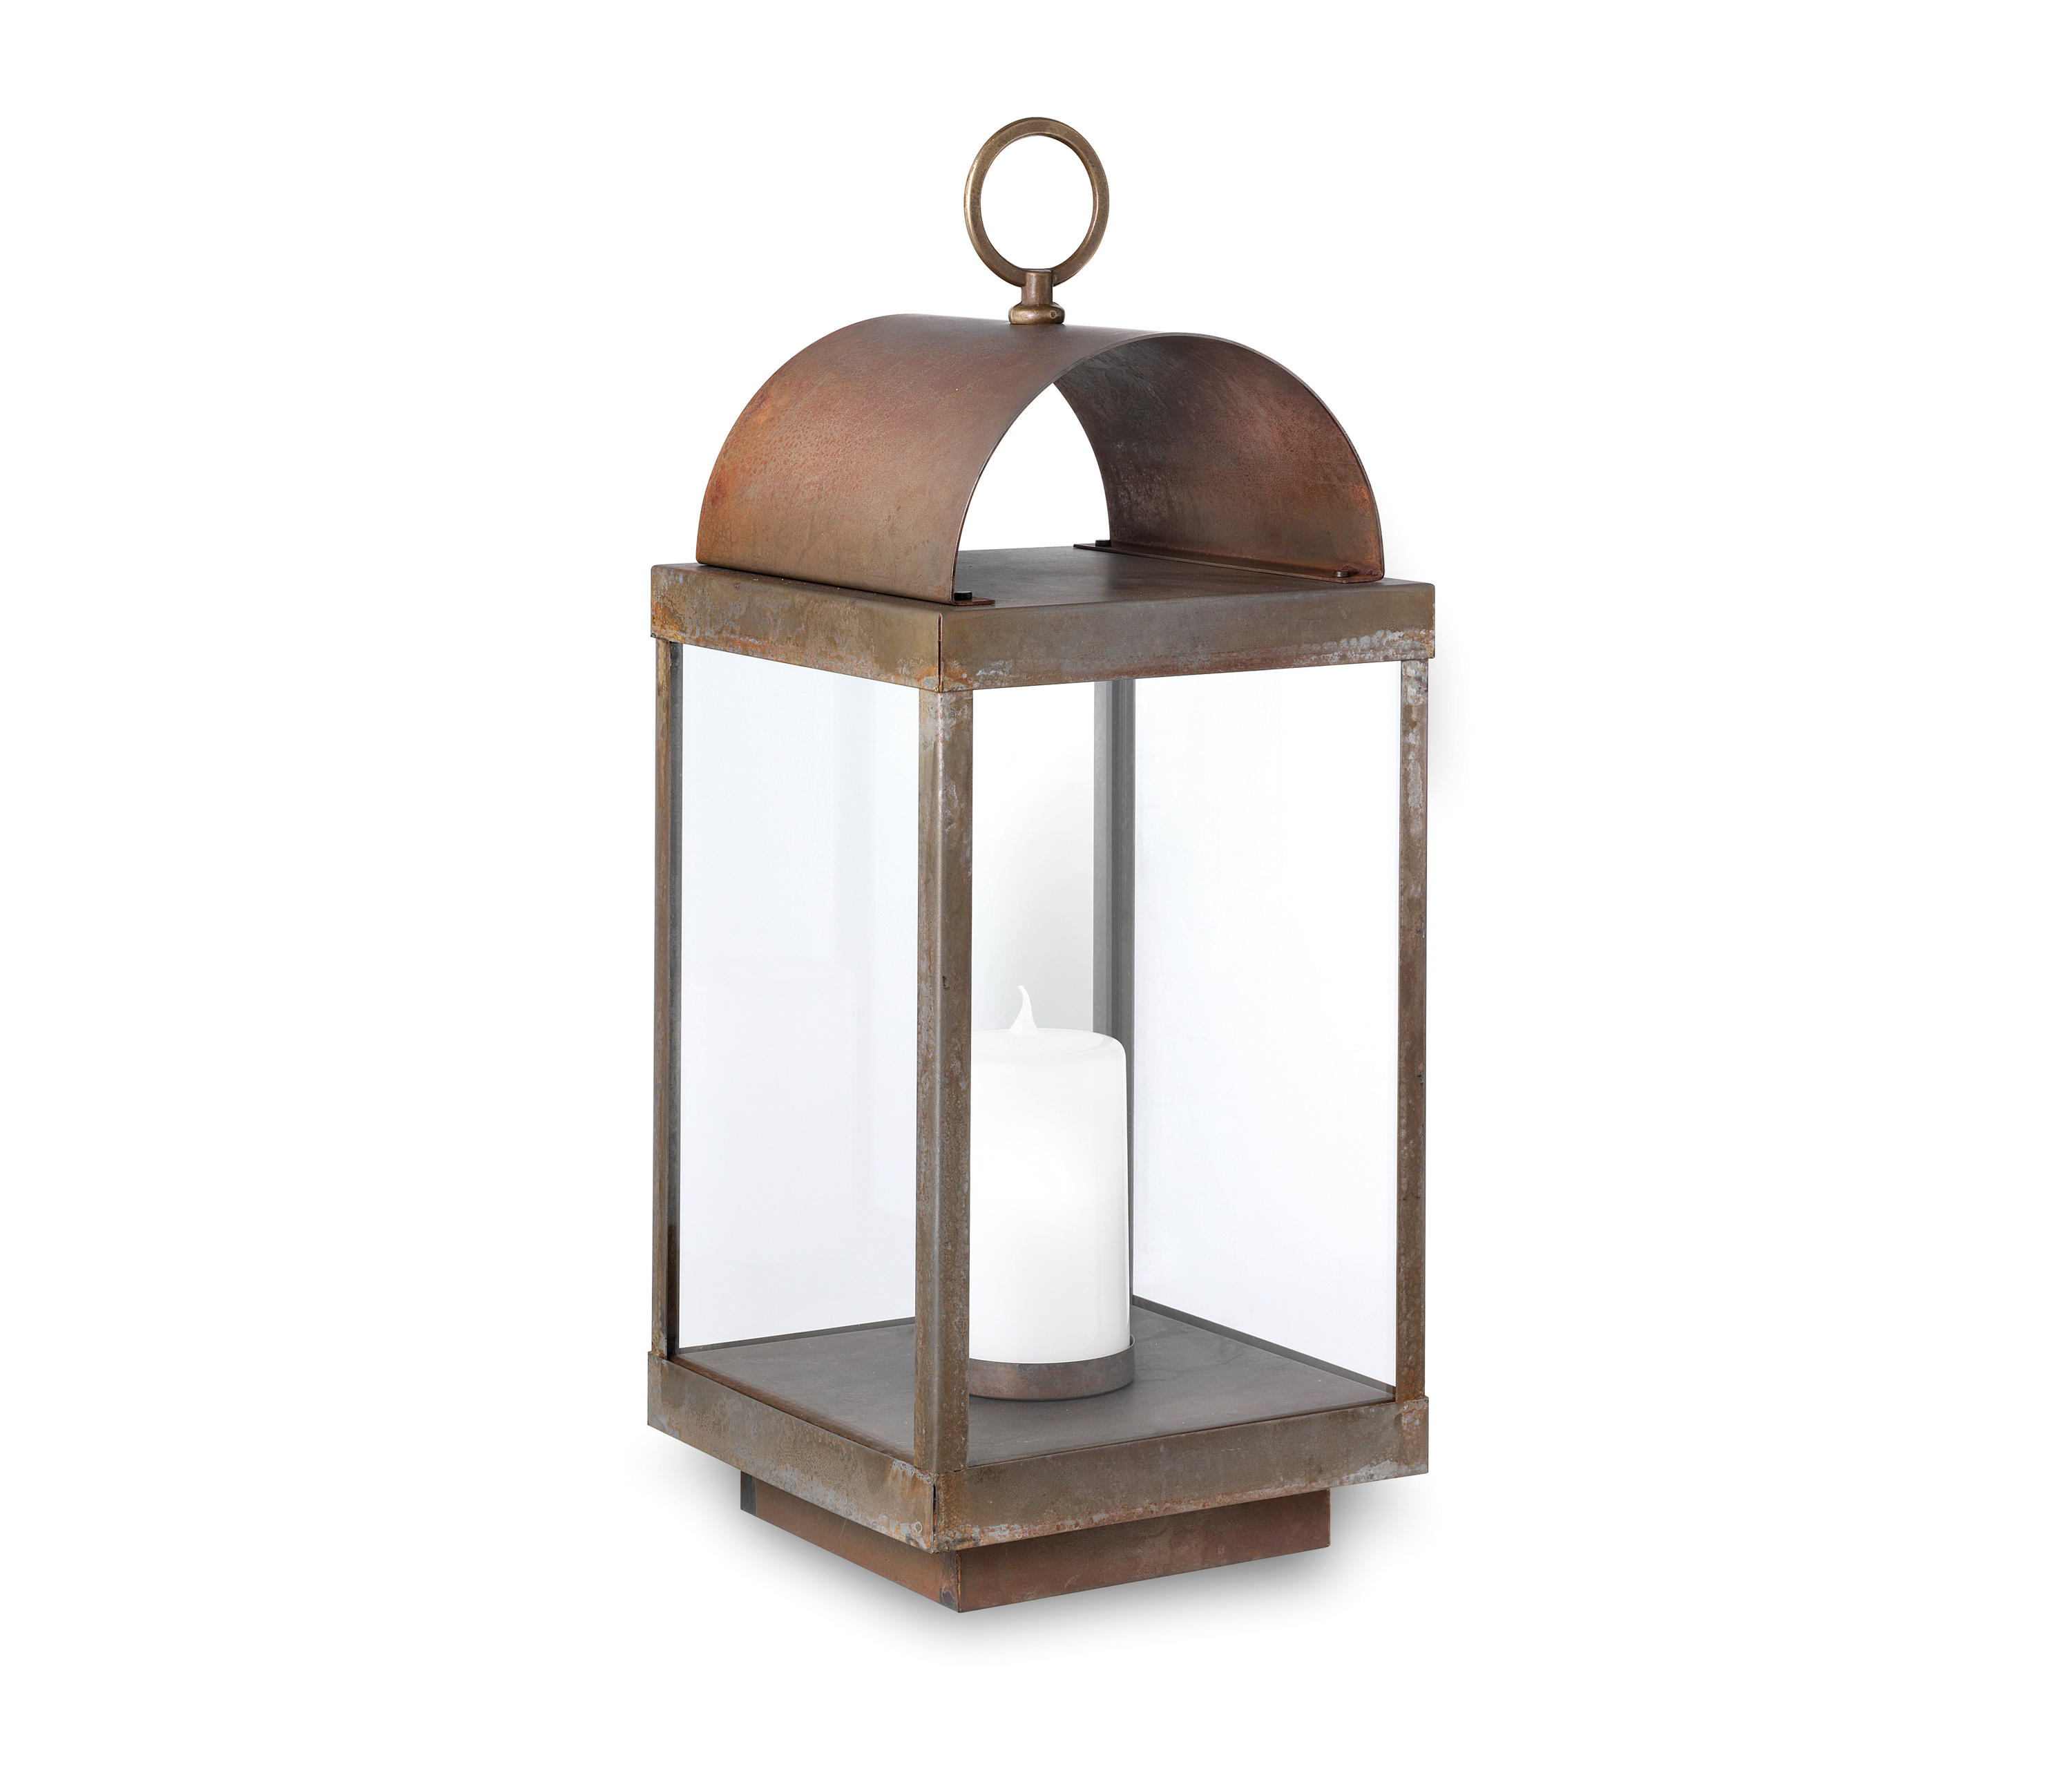 Lanterne By Il Fanale | Outdoor Floor Lights